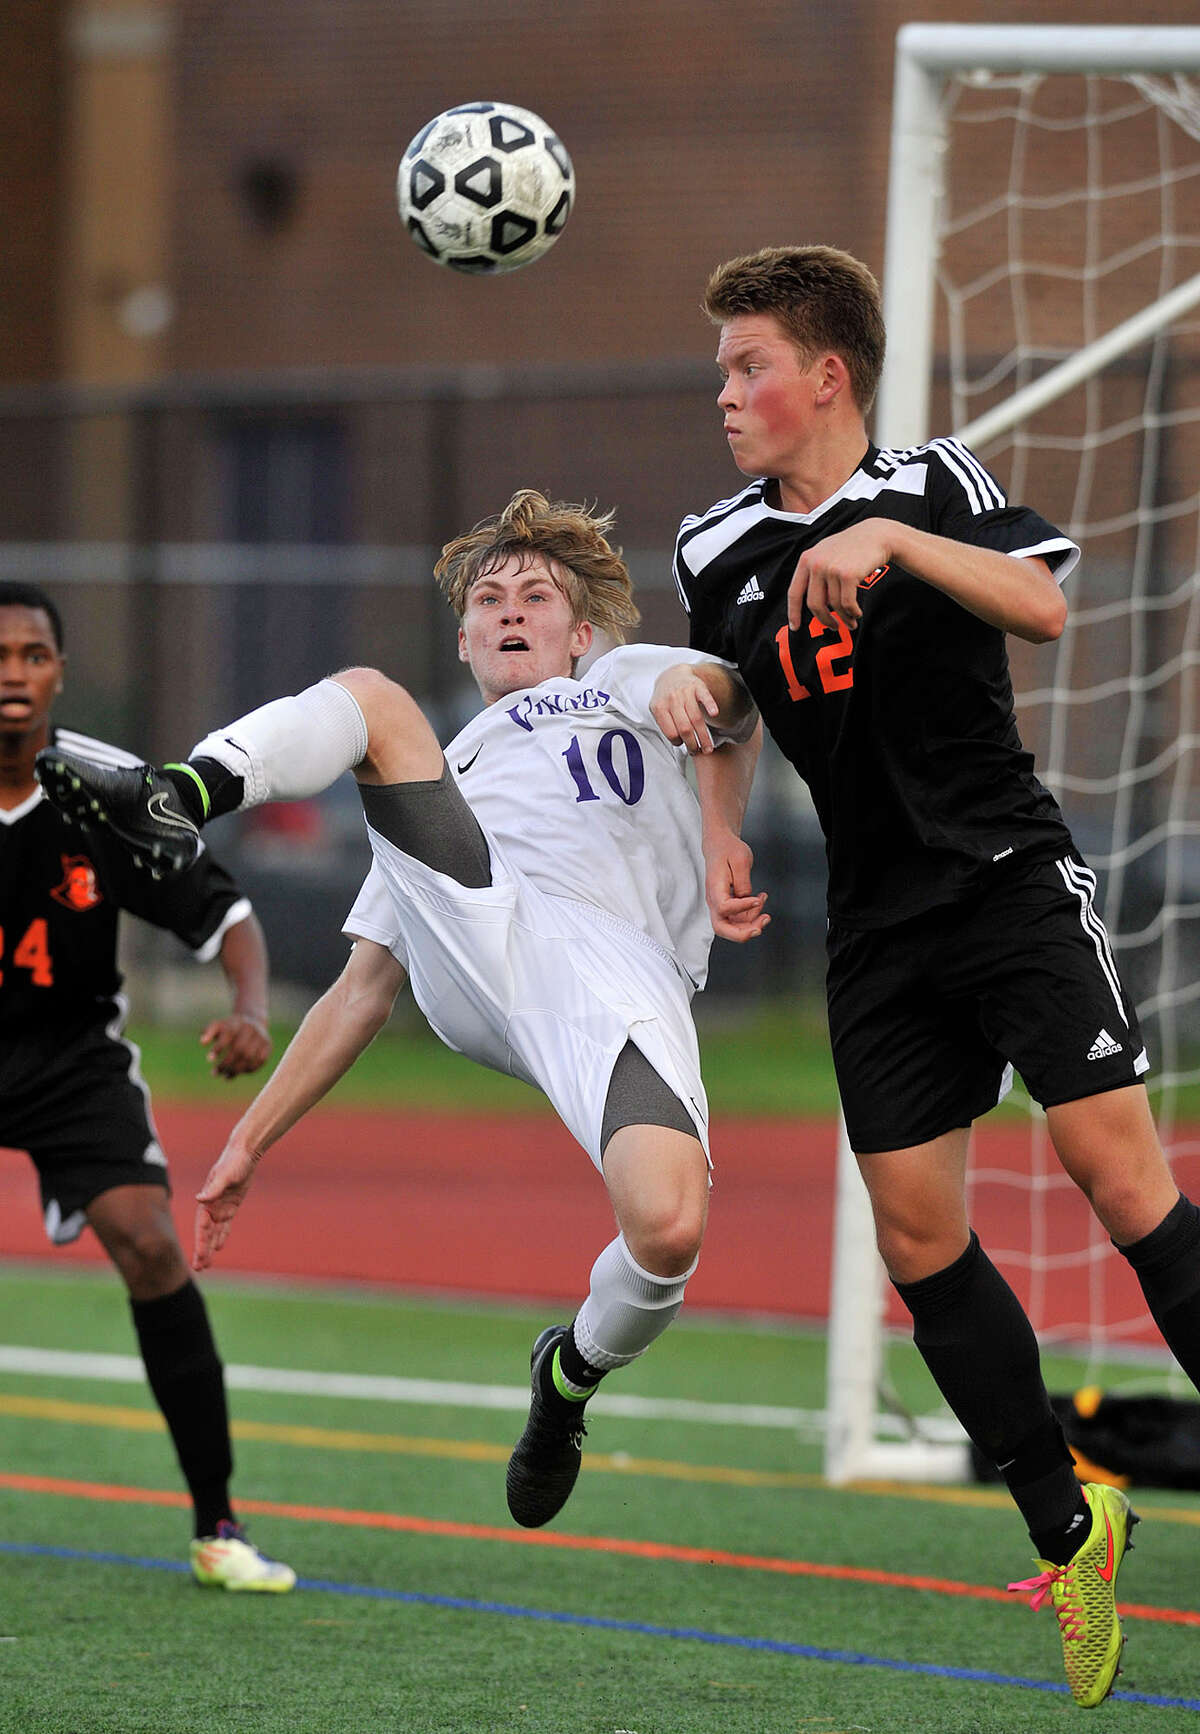 Westhill's Jake Atkinson performs a bicycle kick eventually scoring off a deflection from a Stamford defender while under pressure from Stamford's Kristian Lukasiak during their soccer game at Westhill High School in Stamford, Conn., on Wednesday, Oct. 15, 2014. Westhill won, 3-0.